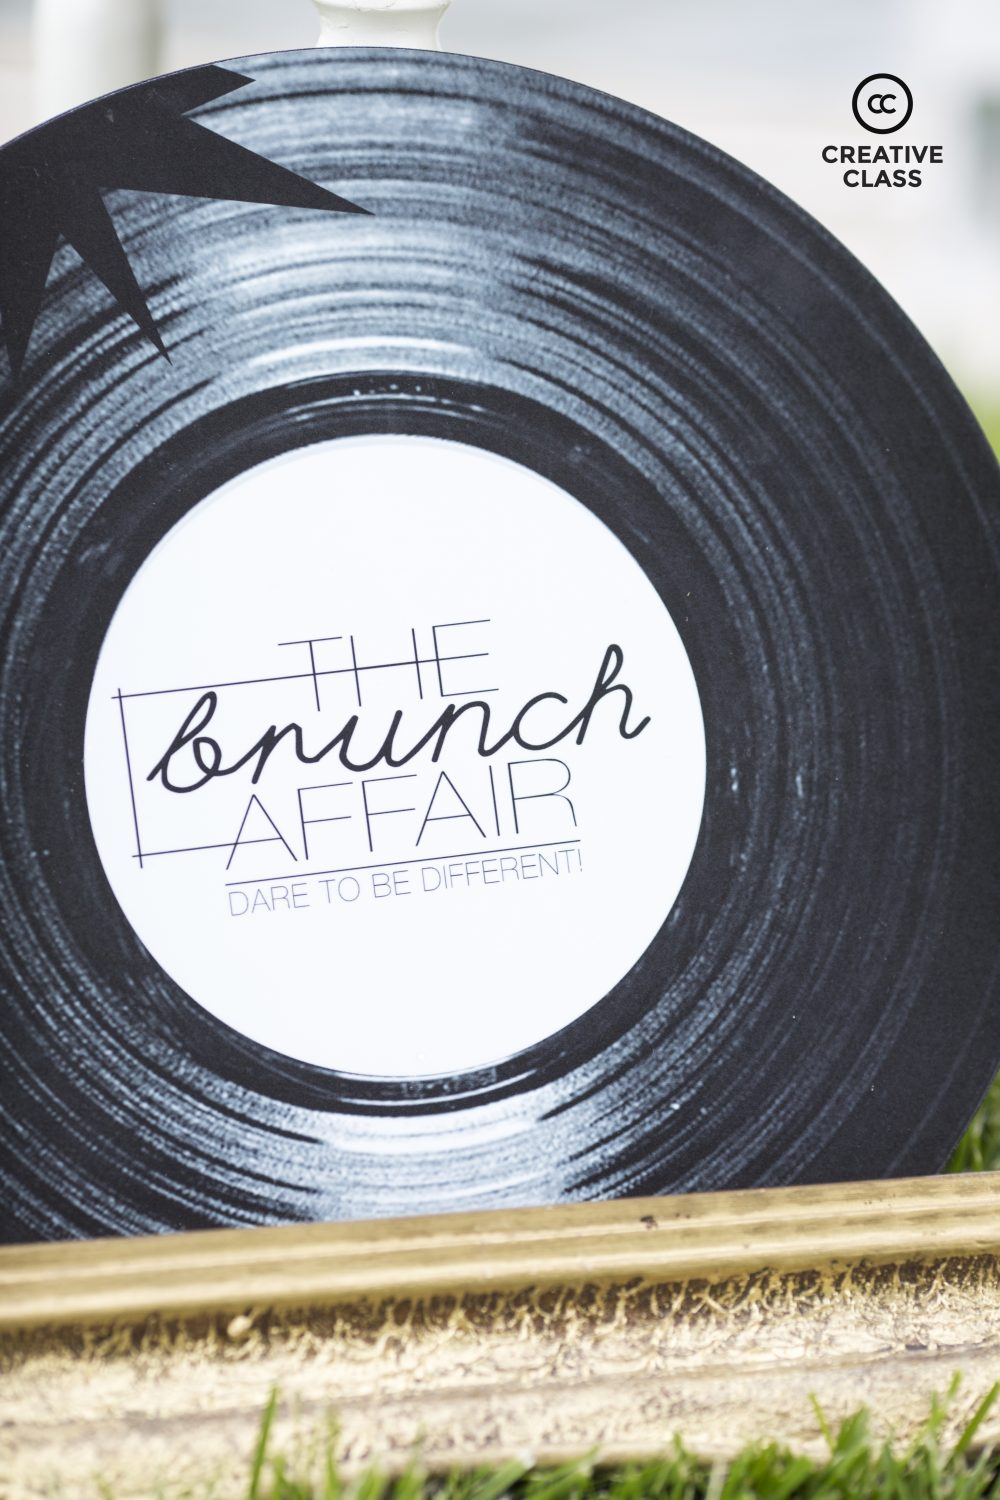 The Brunch Affair